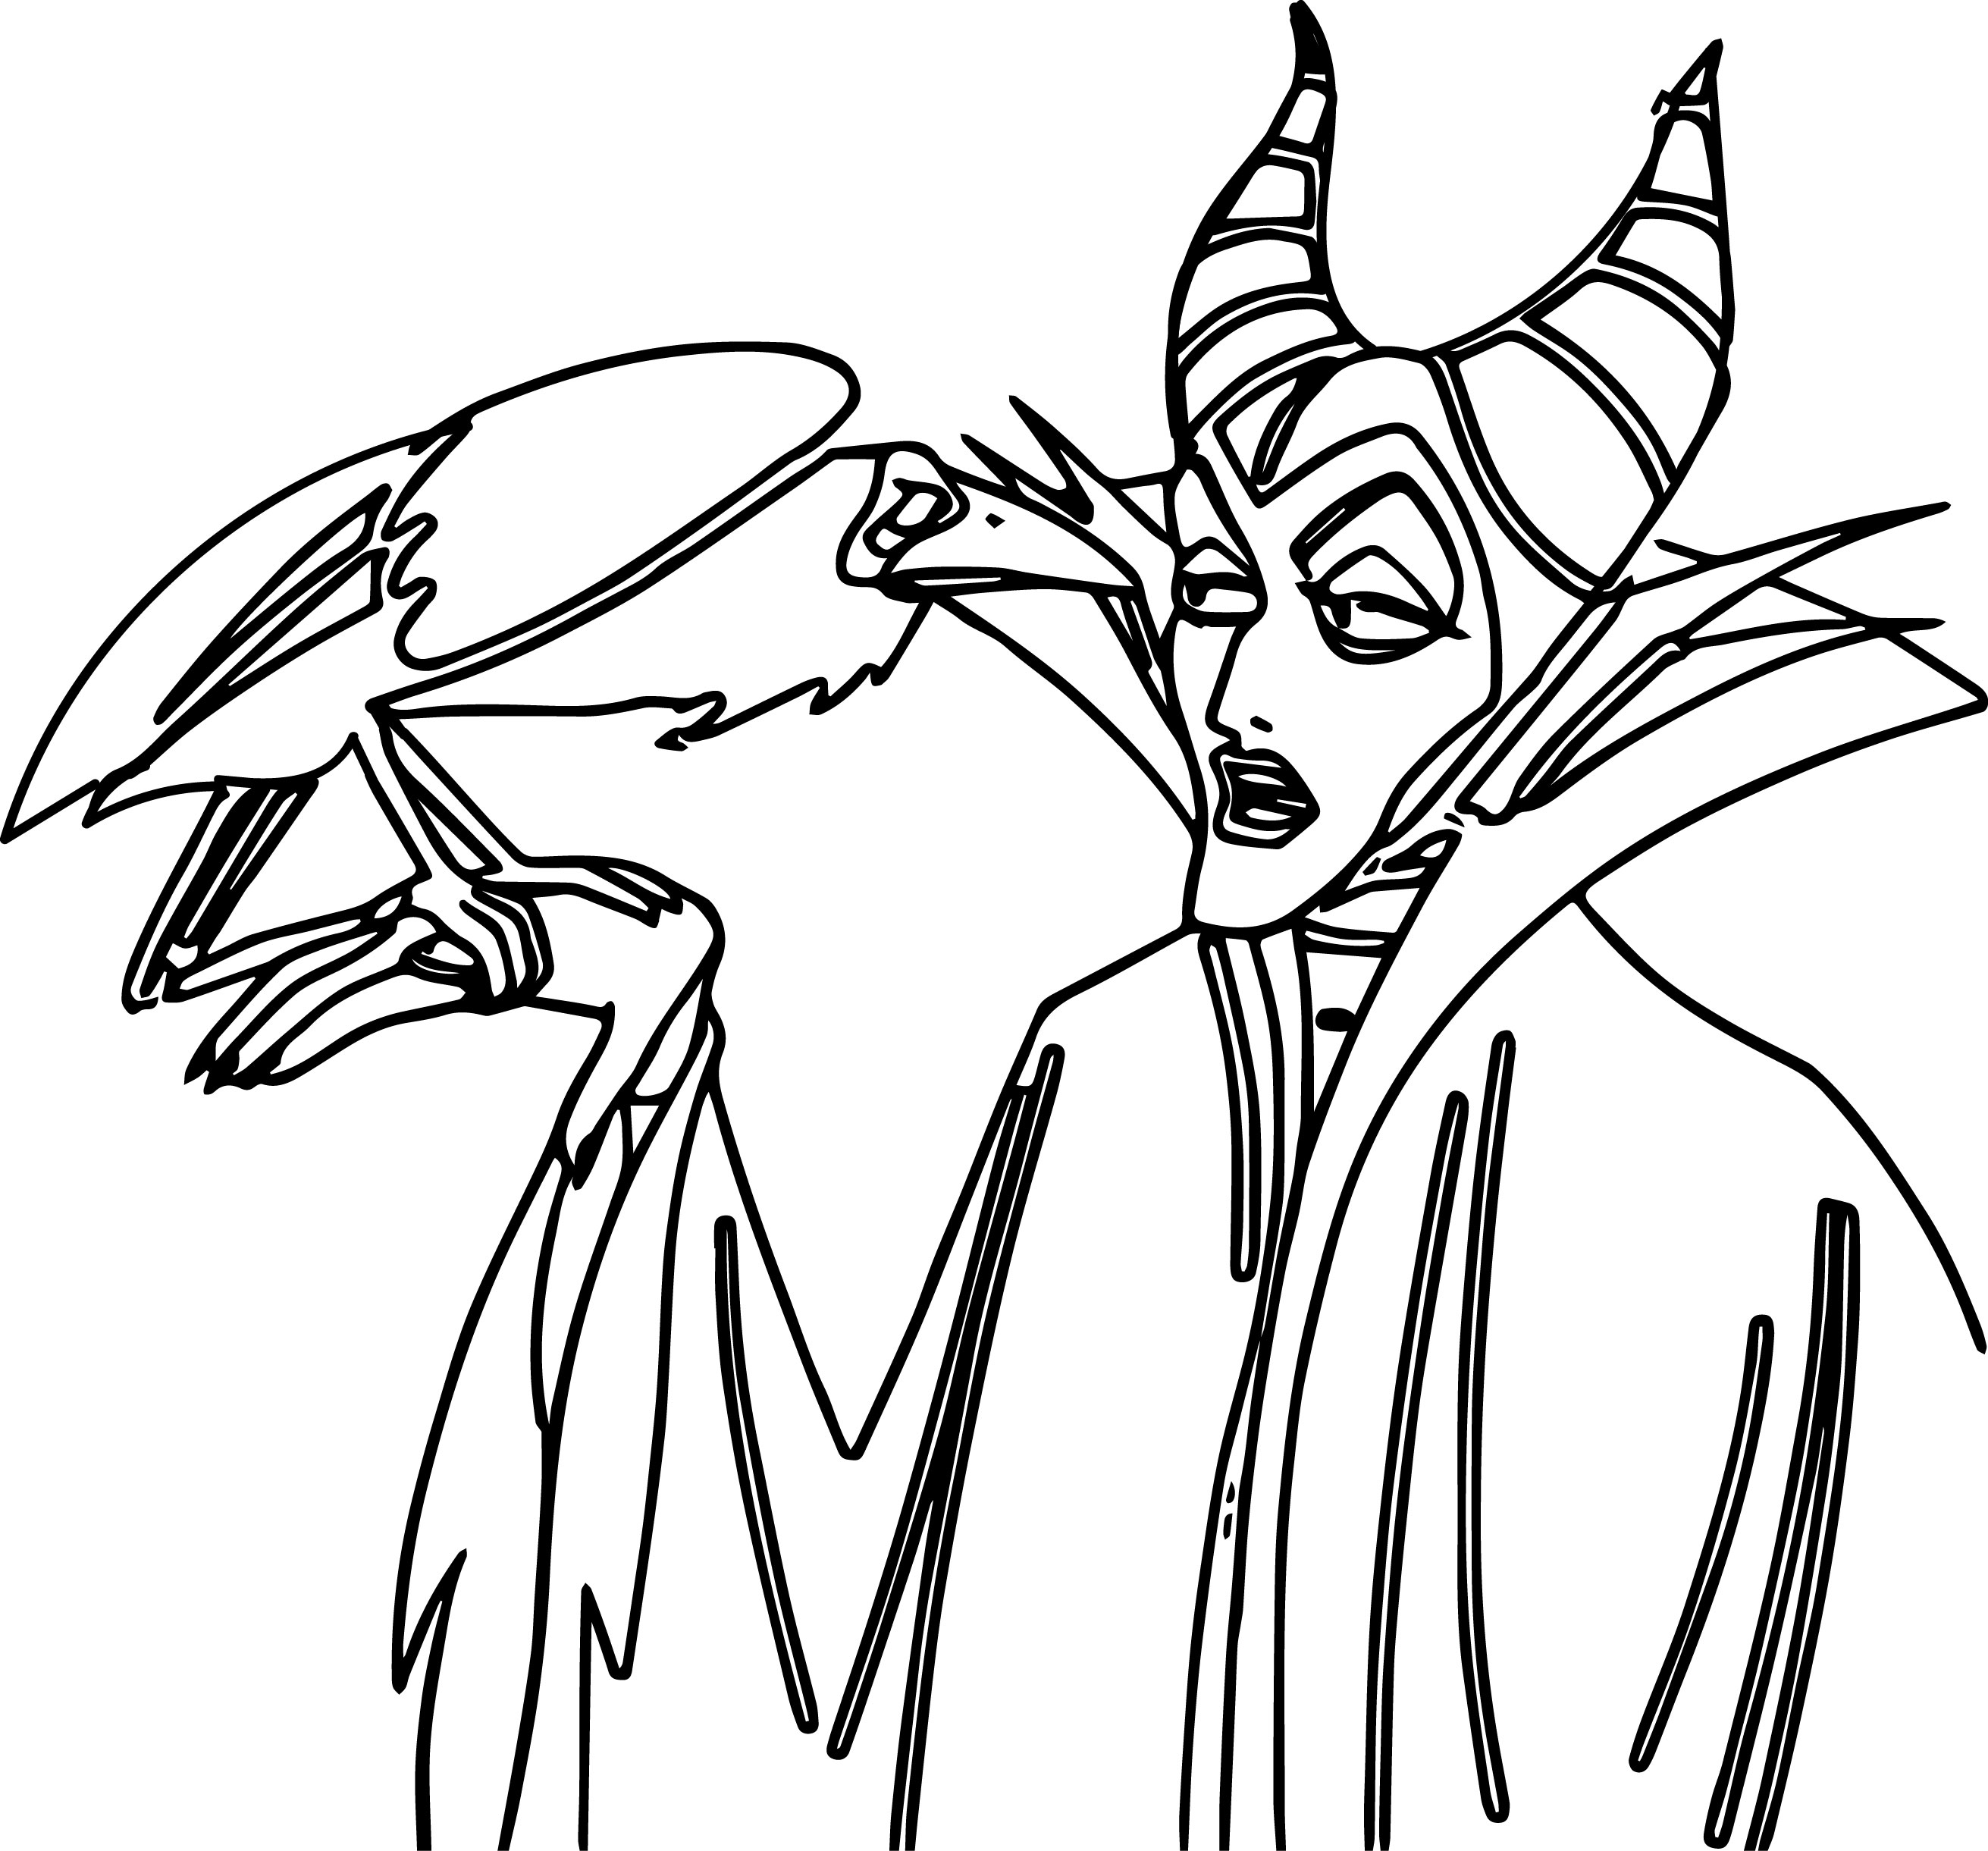 Aurora Maleficent Talking With Crow Coloring Page